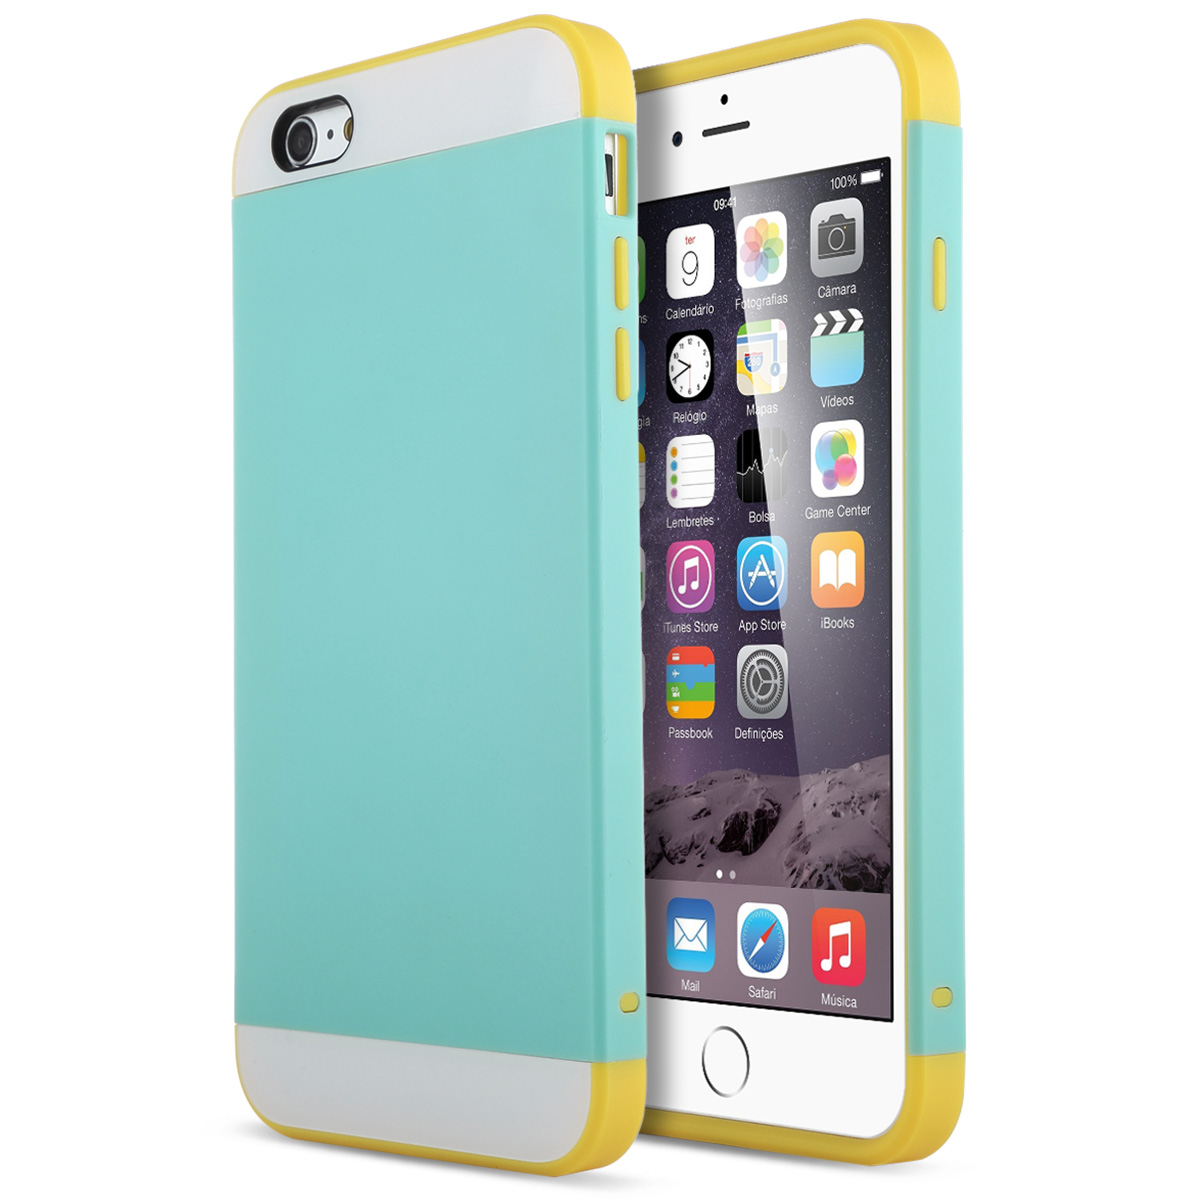 ULAK Hybrid Ultra Slim Protective Case for iPhone 6 Plus and iPhone 6s Plus (5.5 inch) Dual Layer Premium Cover with Card Storage (Light Blue/Yellow)